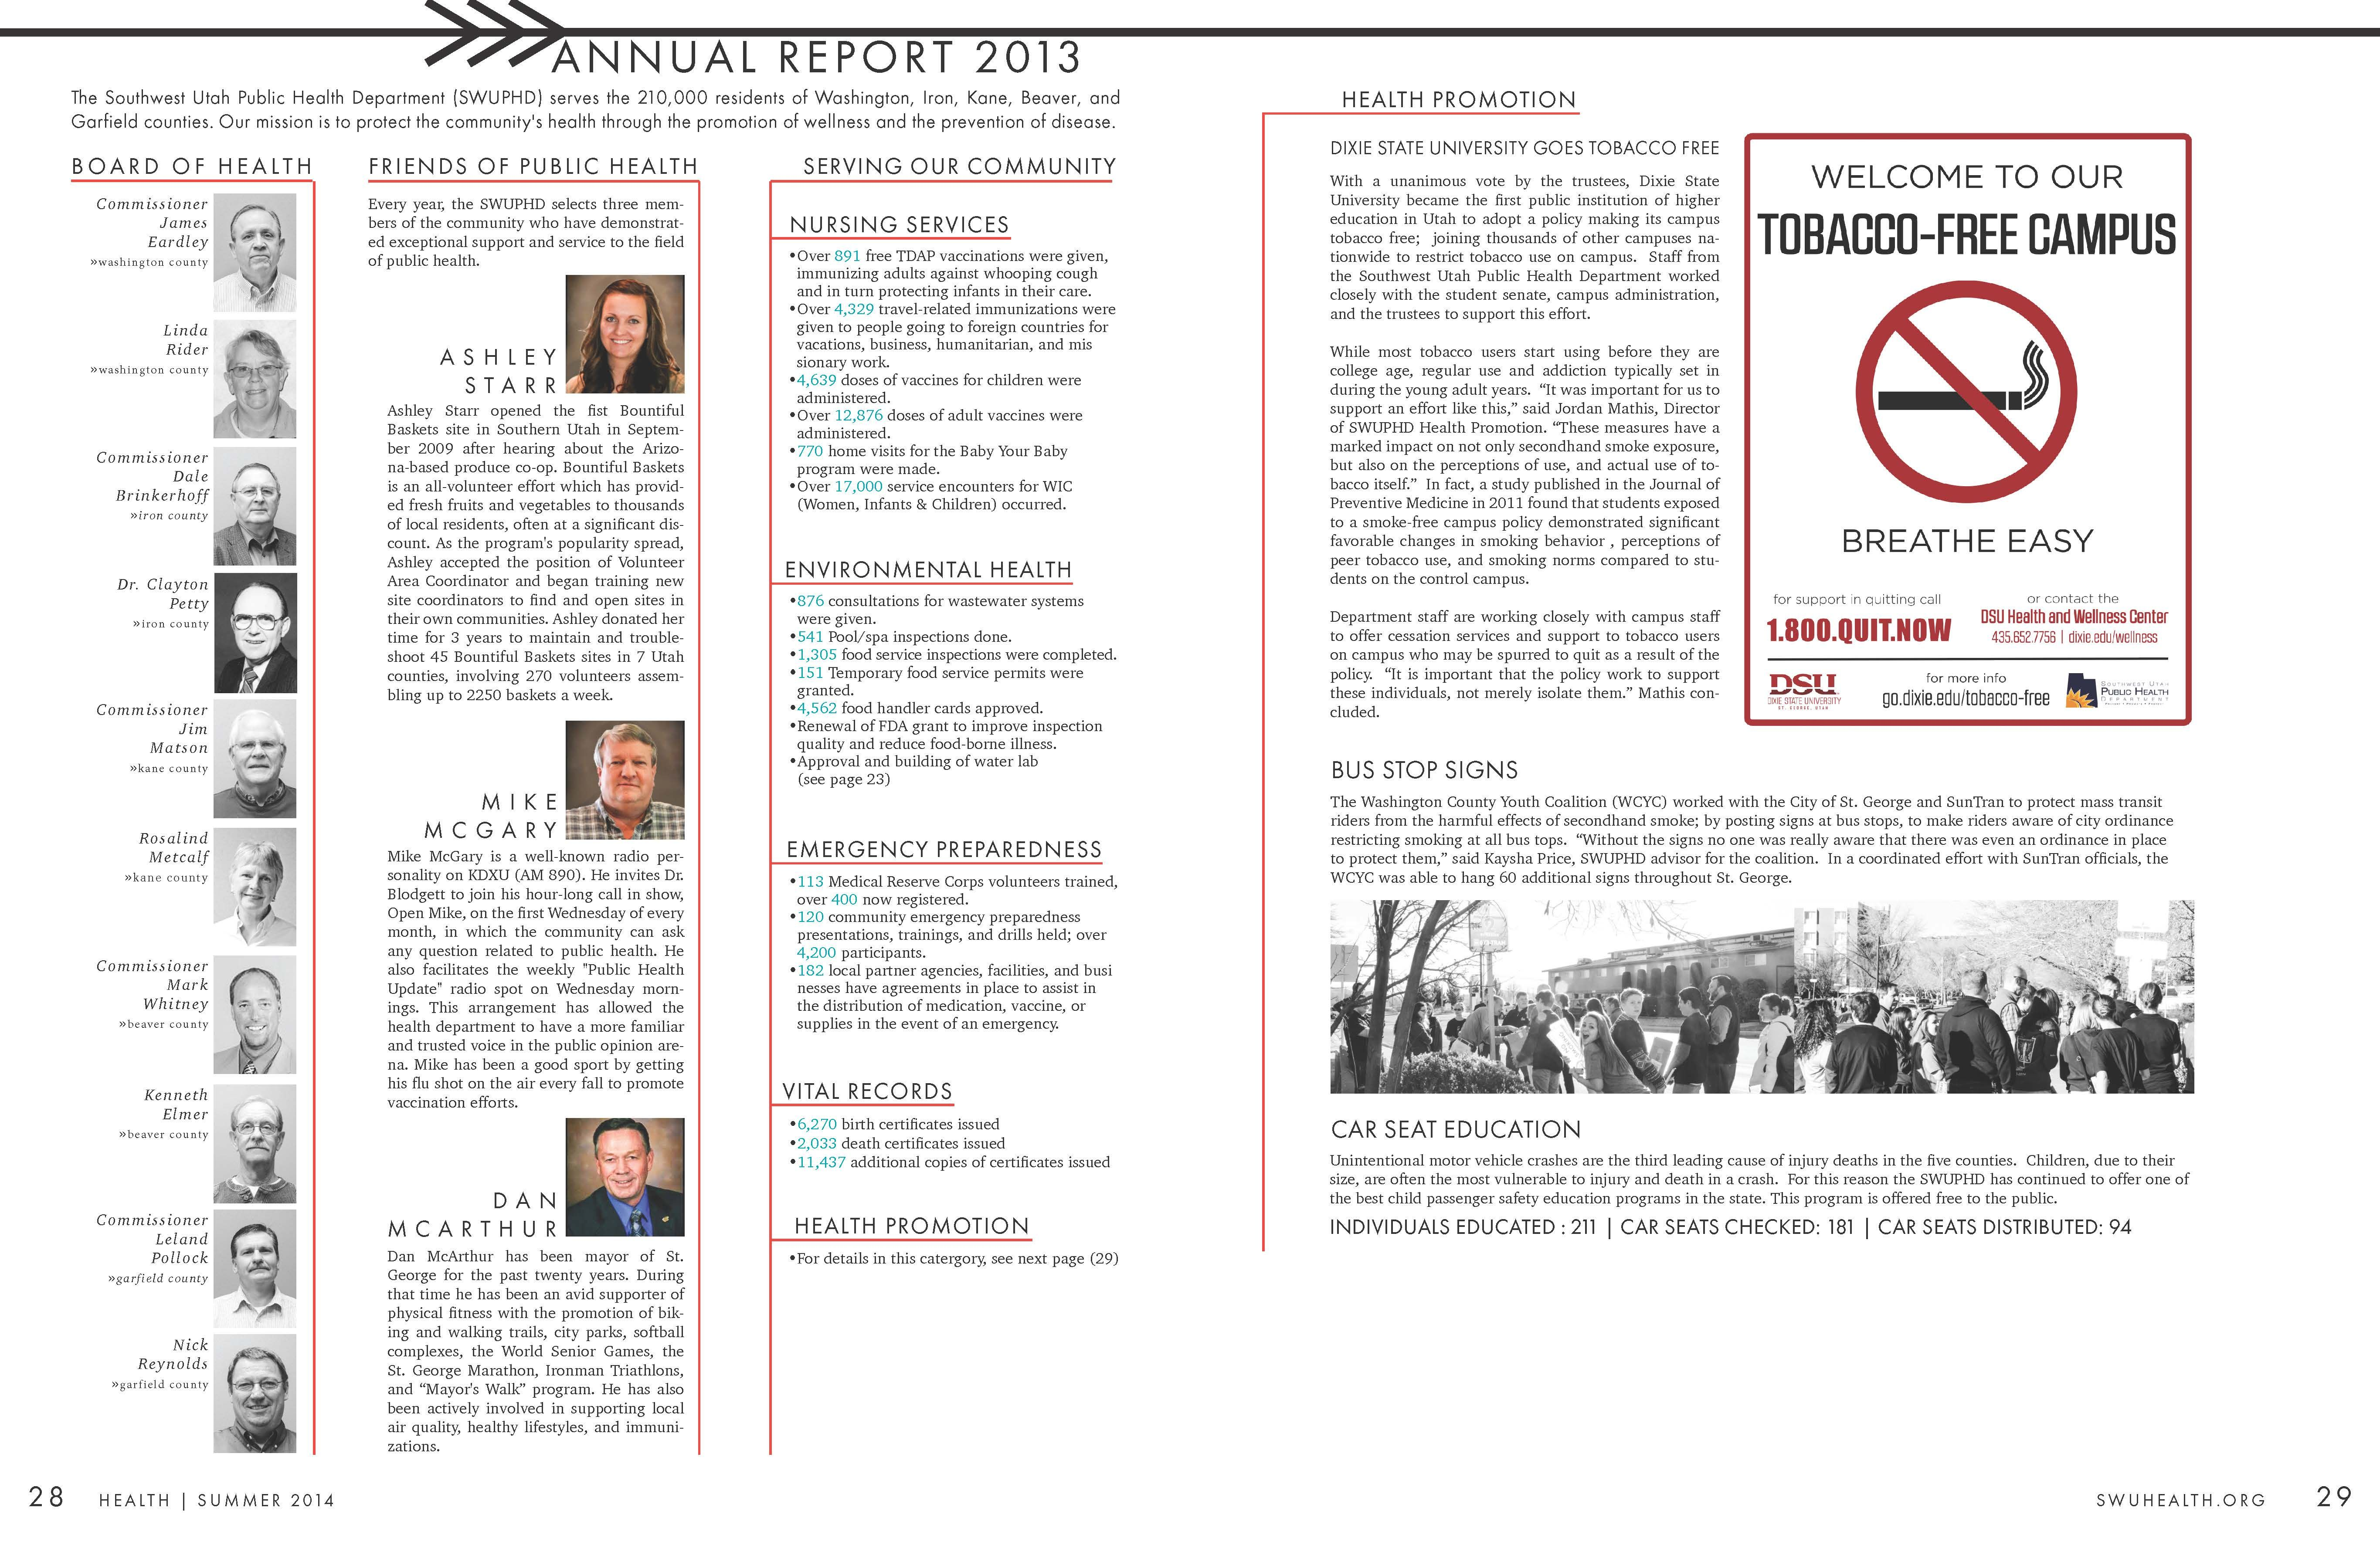 Annual Report For The Southwest Utah Public Health Department Part I Health Department Tobacco Free Health Magazine